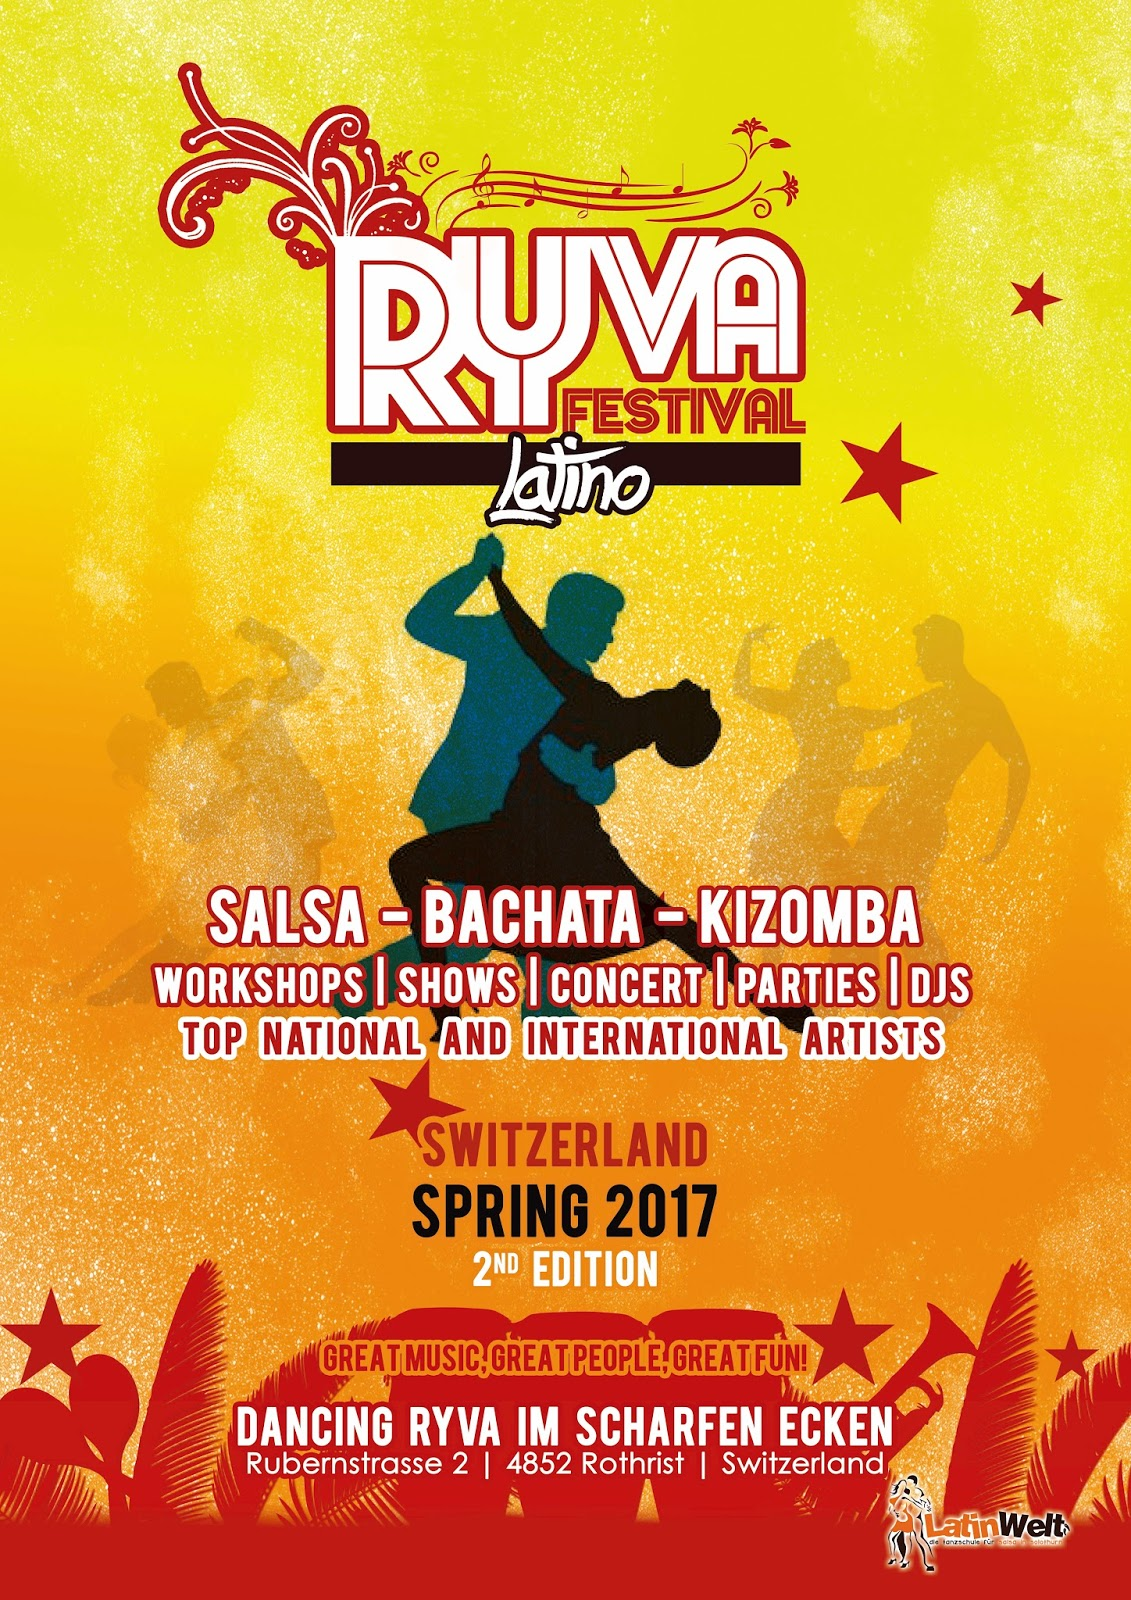 RYVA FESTIVAL LATINO SWITZERLAND 12. - 14. Mai 2017